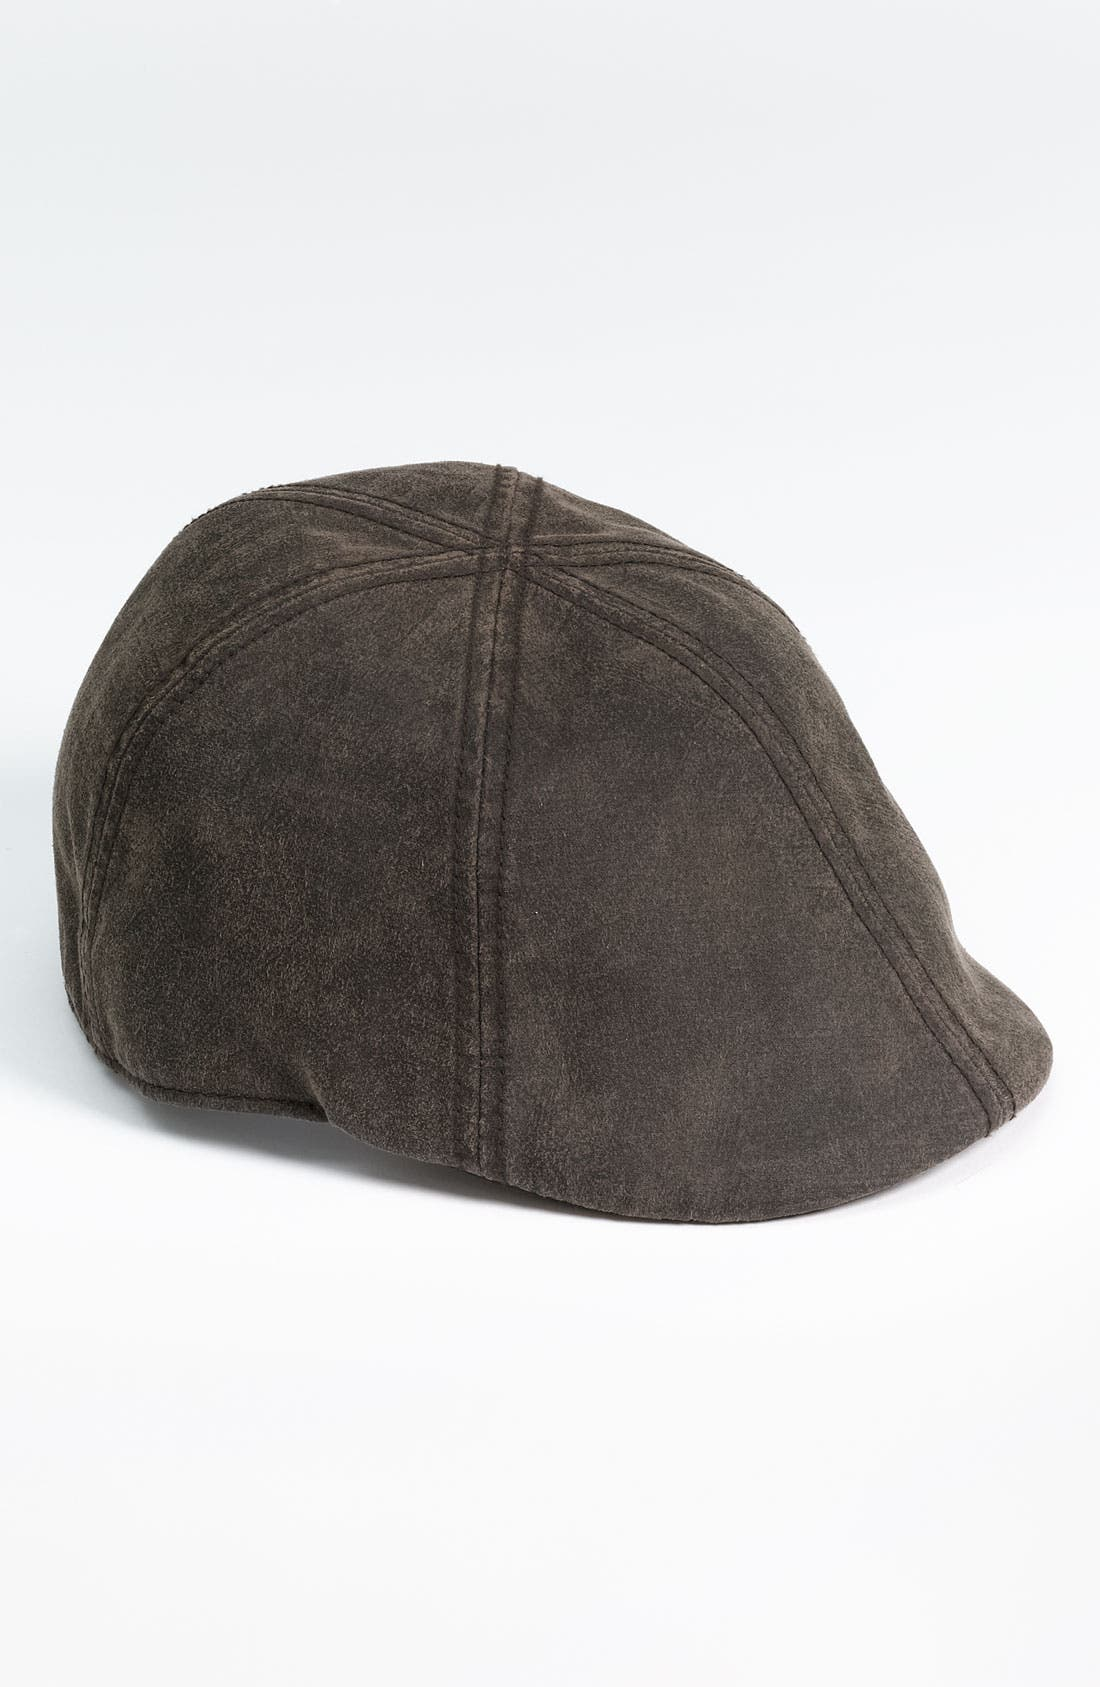 Alternate Image 1 Selected - Free Authority Faux Leather Duckbill Ivy Cap